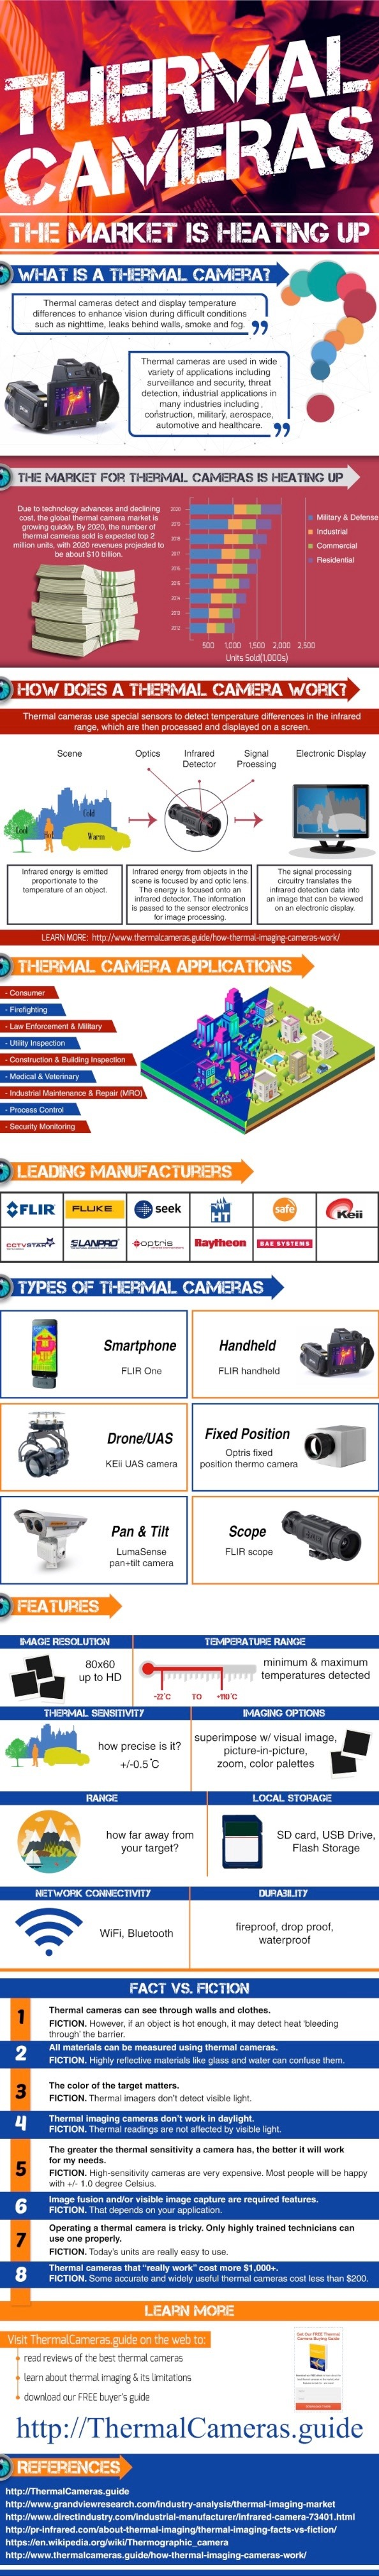 thermal cameras infographic